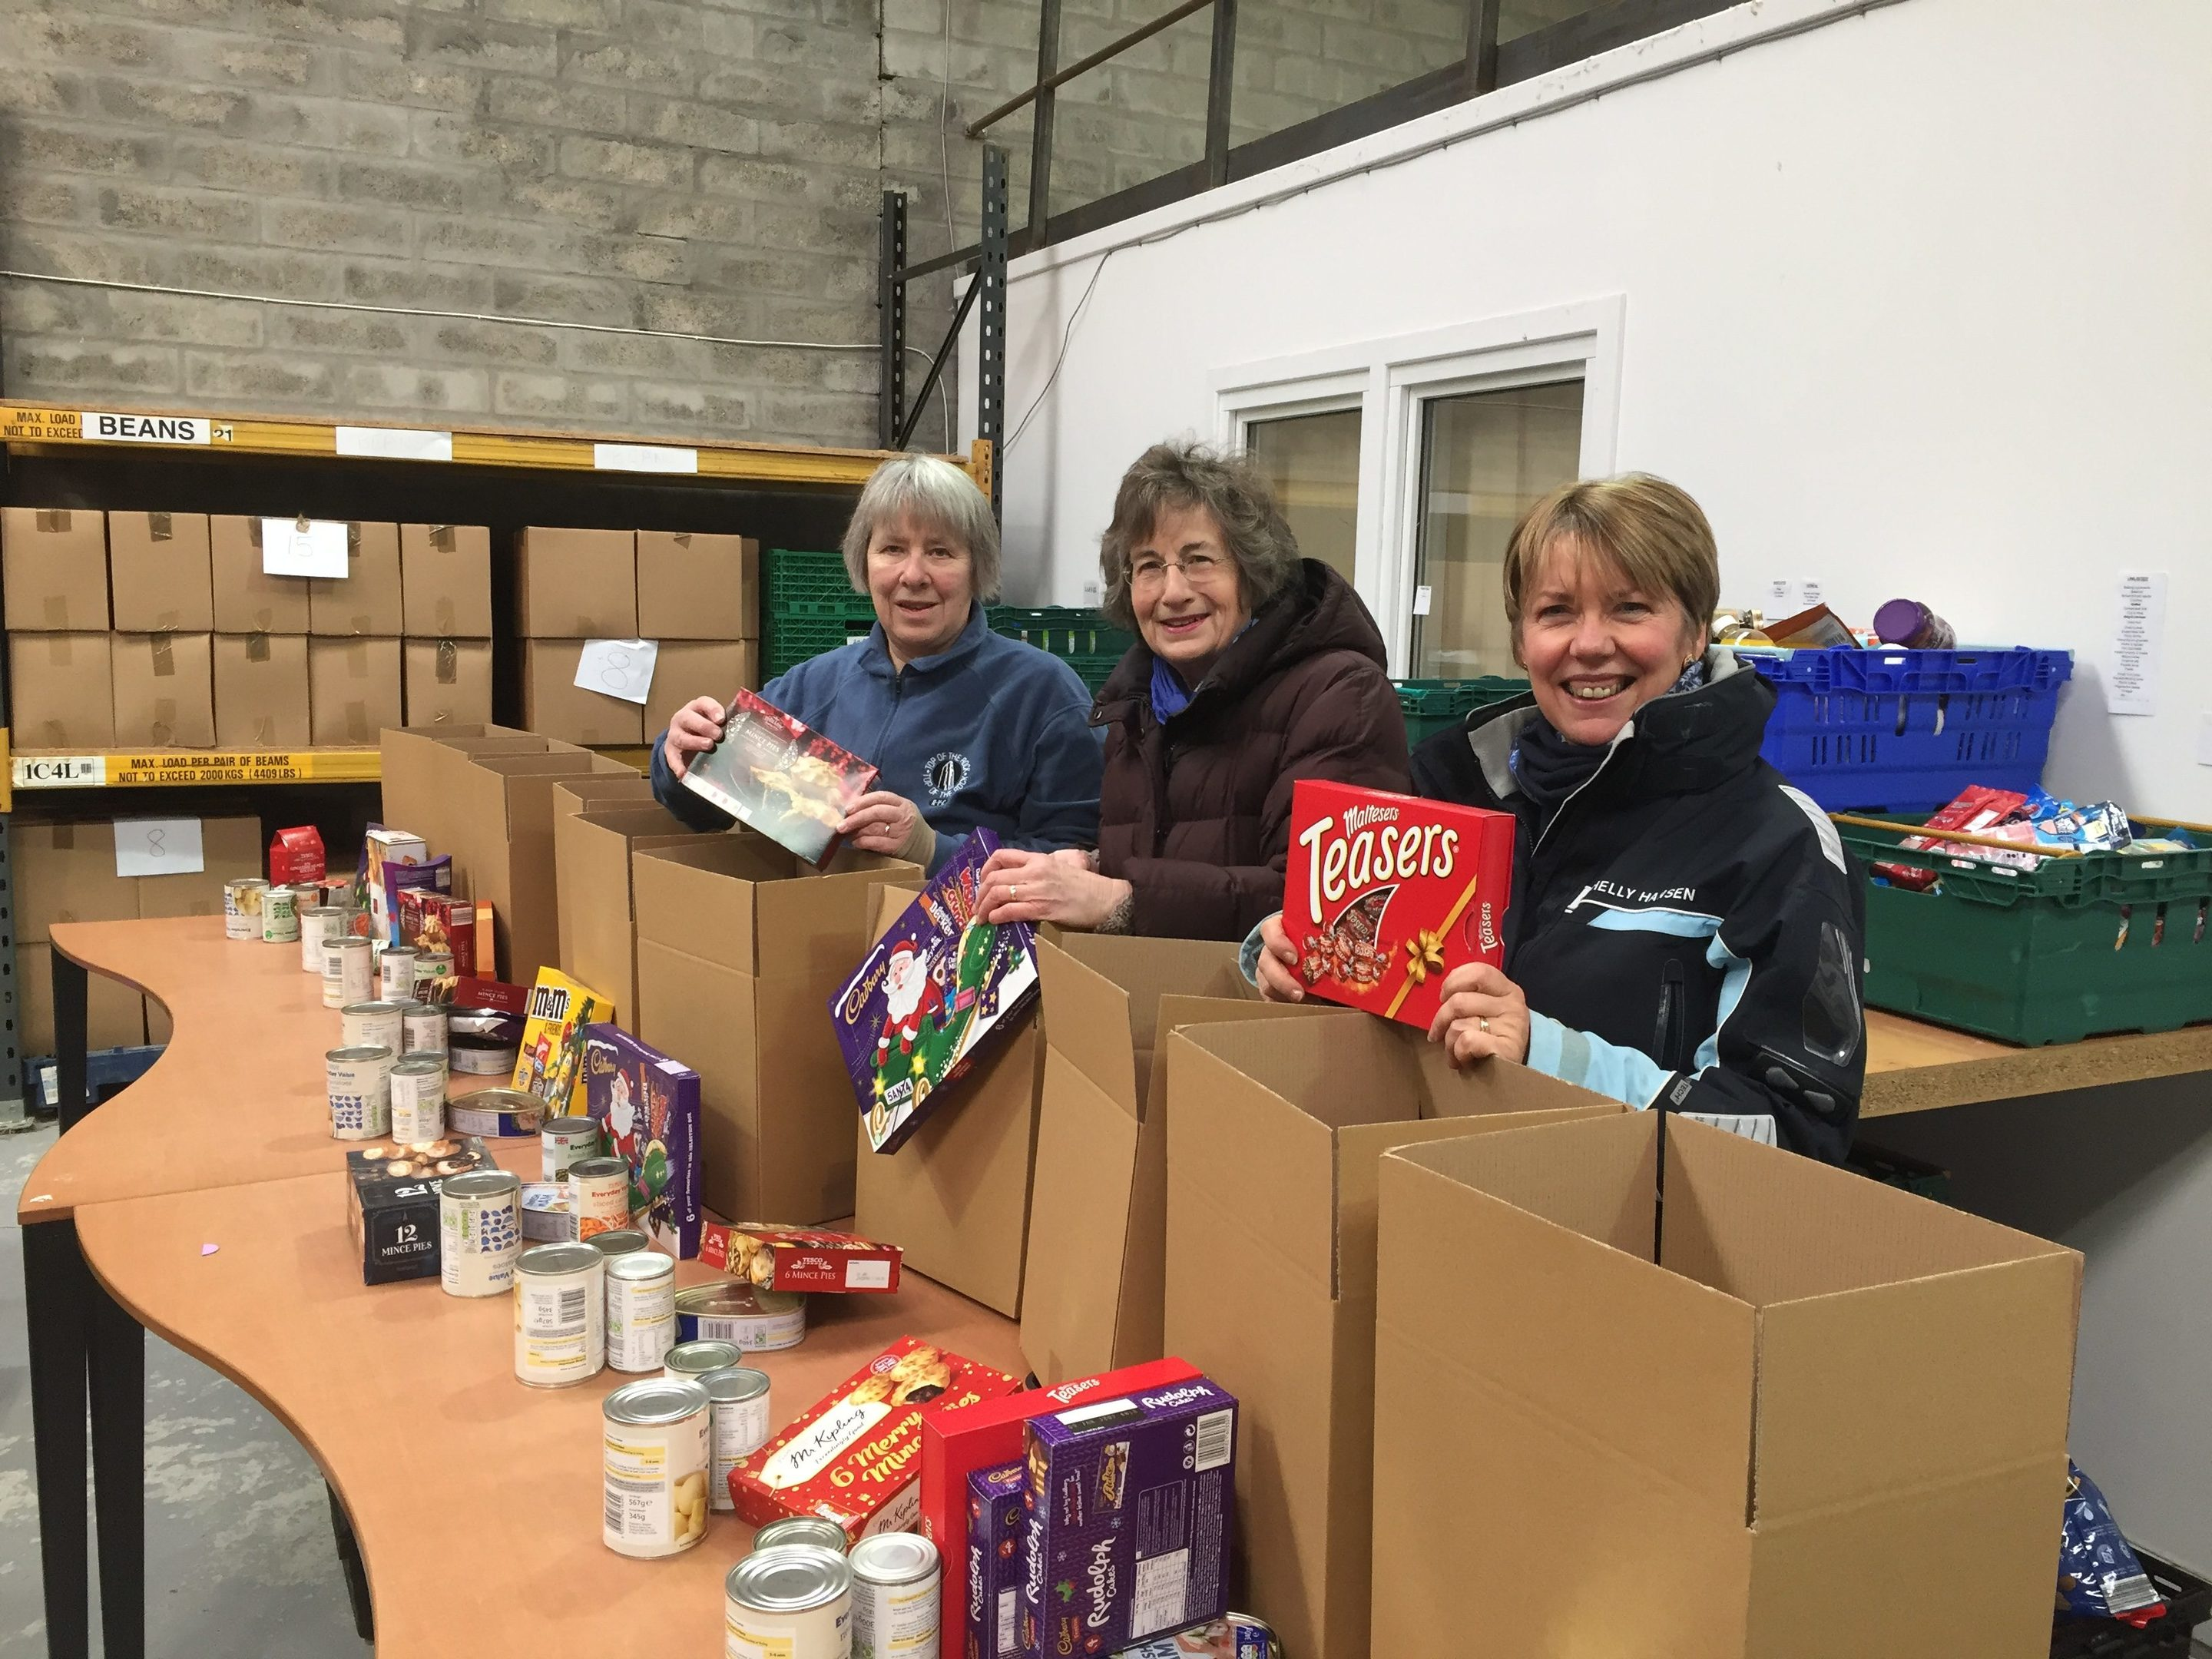 (L-R) Foodbank volunteers Marbeth Ritchie, Marty Donaldson and North Aberdeenshire Food Bank manager Jeannie Price pack up Christmas hampers.